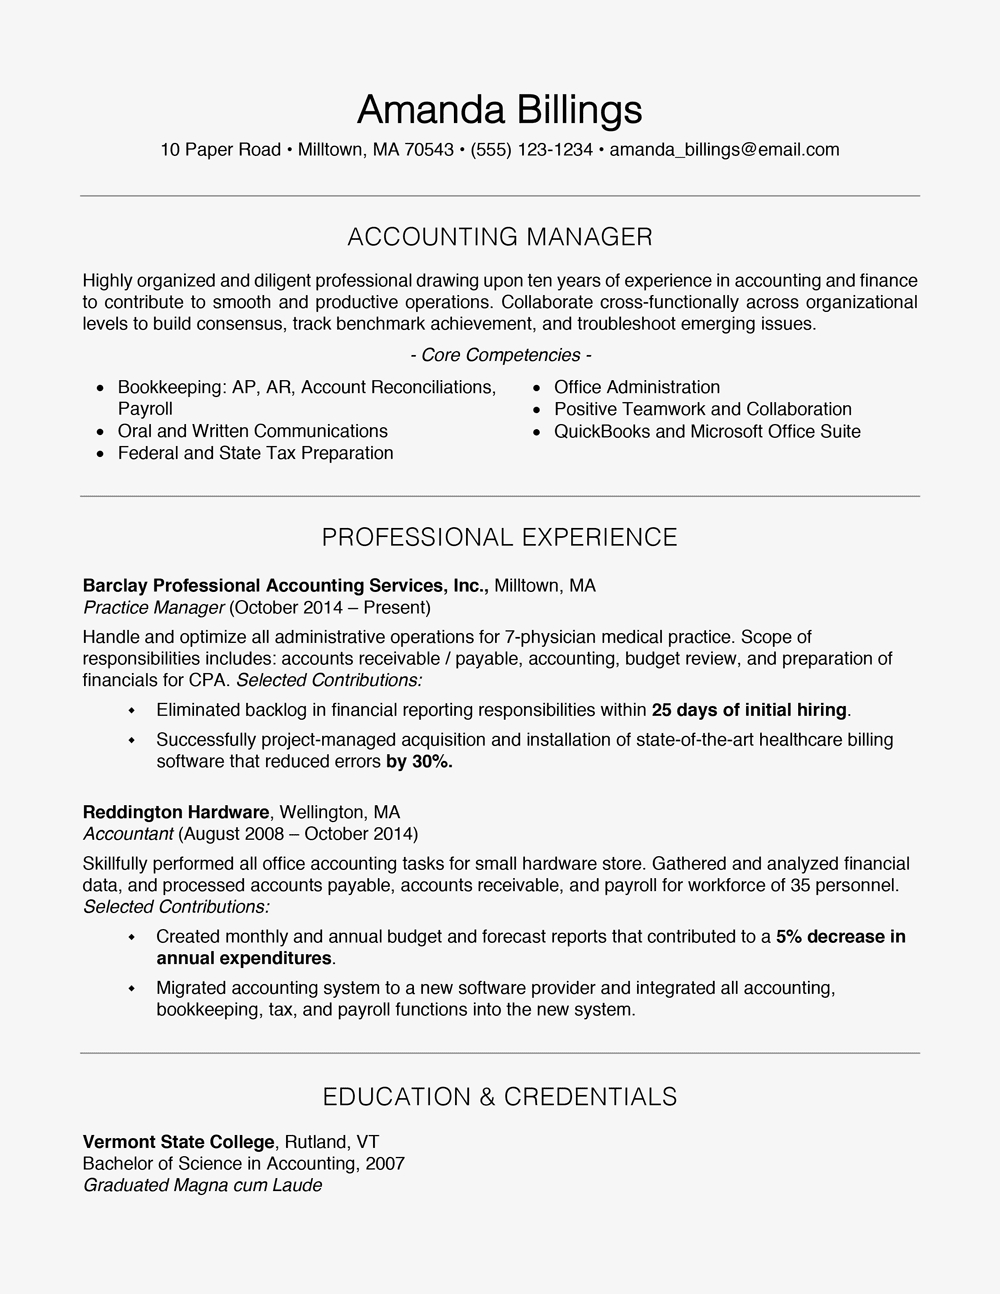 Is It Bad to Use A Resume Template - 100 Free Professional Resume Examples and Writing Tips